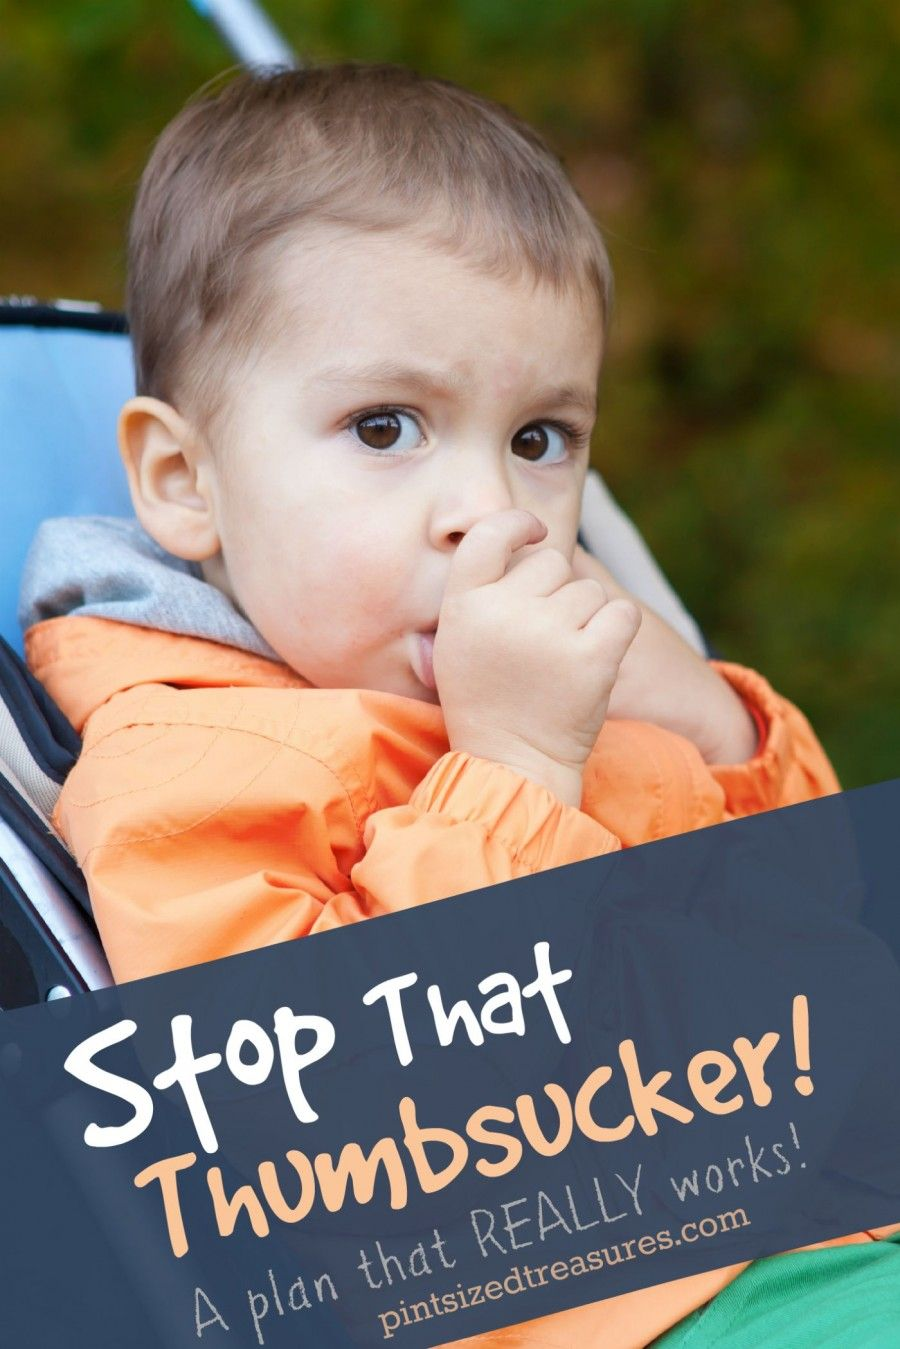 Discussion on this topic: How to Help Your Child Stop Thumb , how-to-help-your-child-stop-thumb/